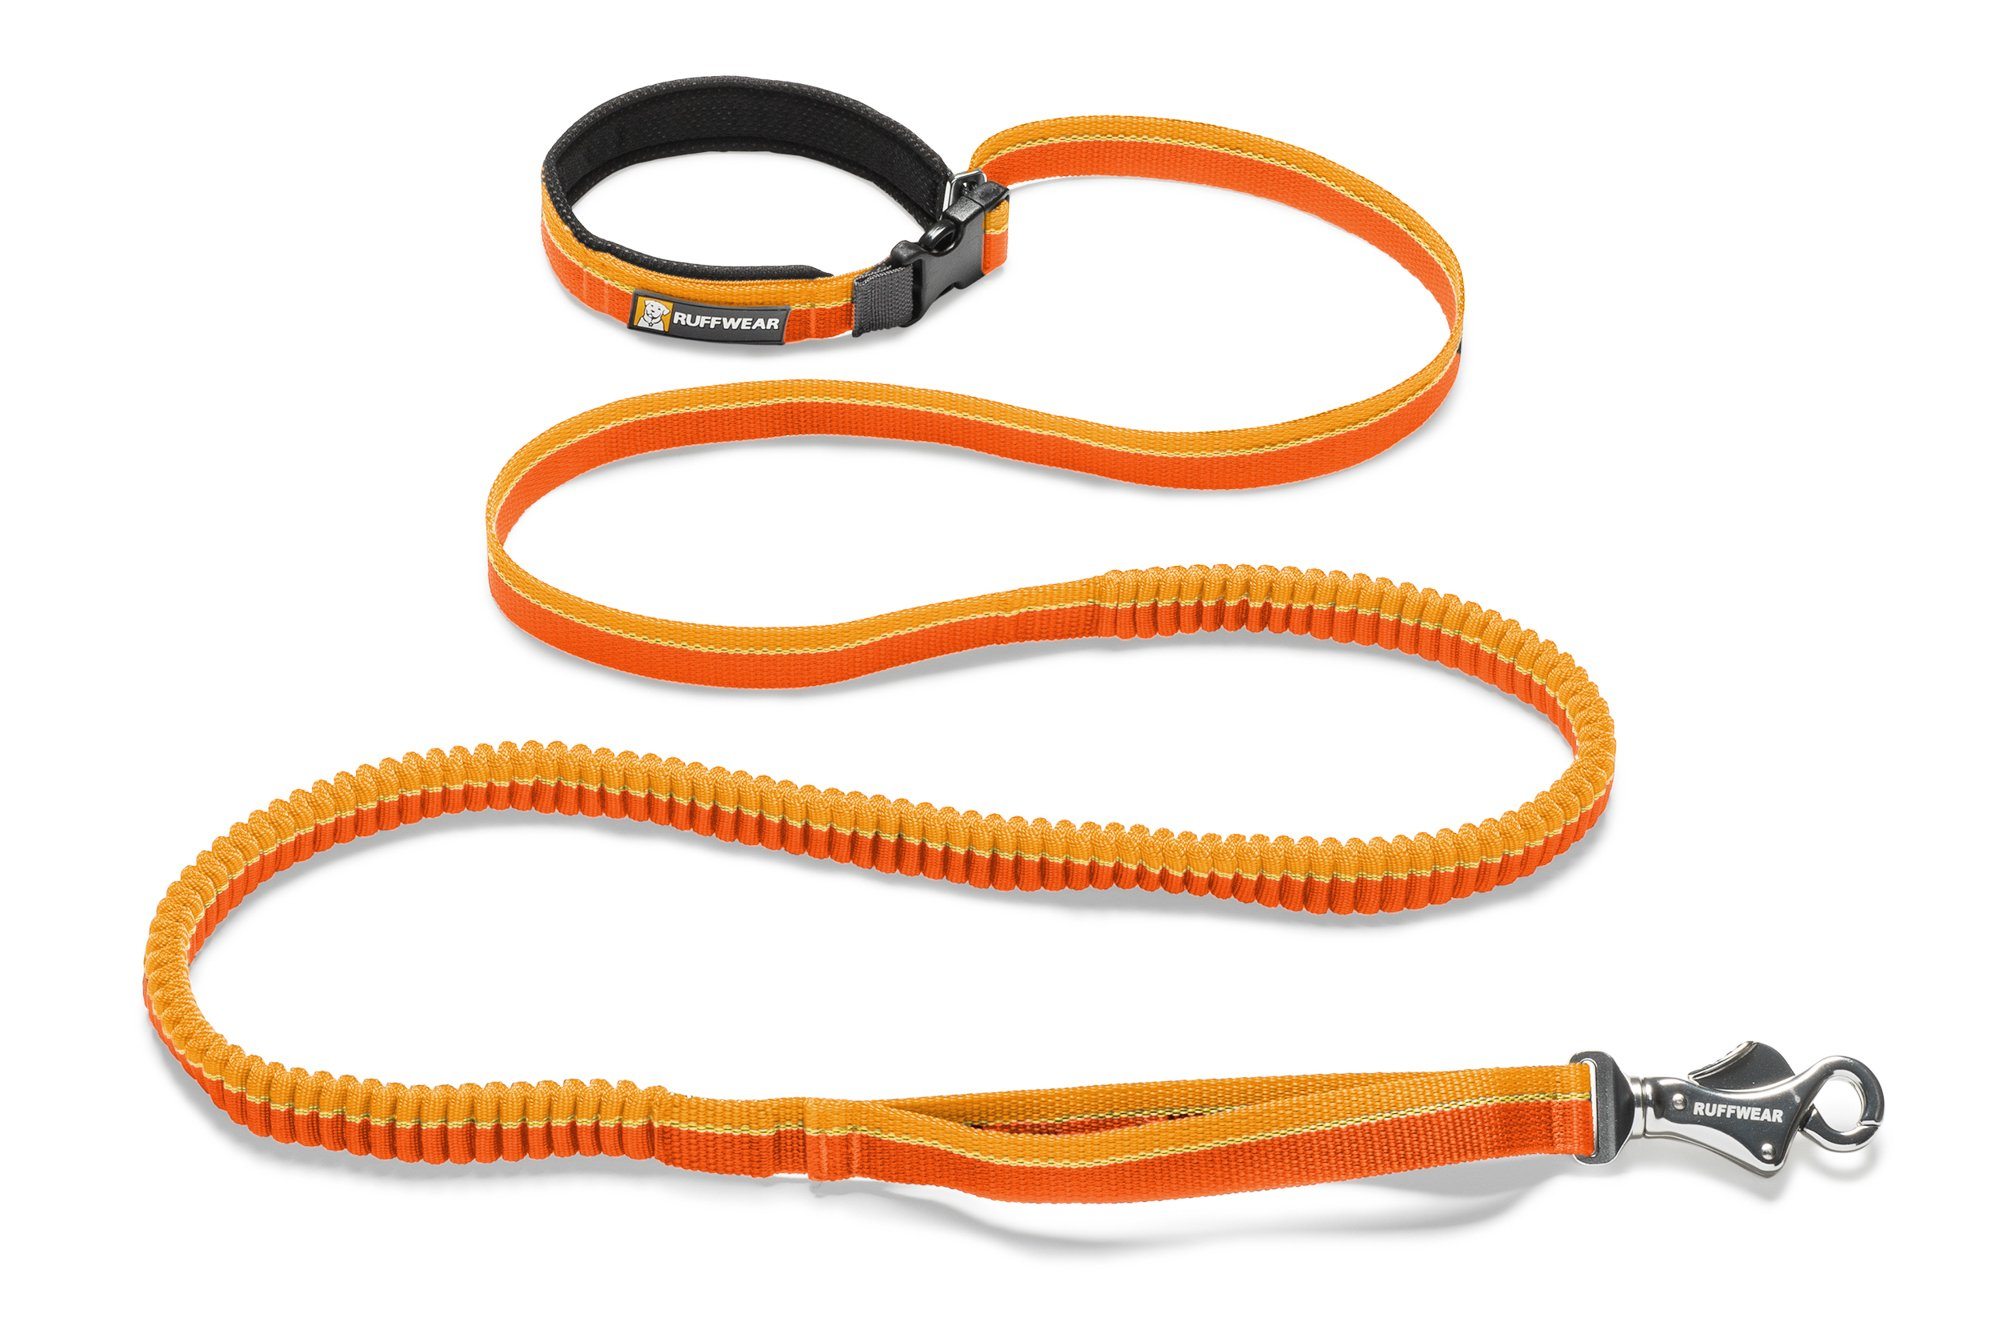 RUFFWEAR - Roamer Leash, Orange Sunset, Large by RUFFWEAR